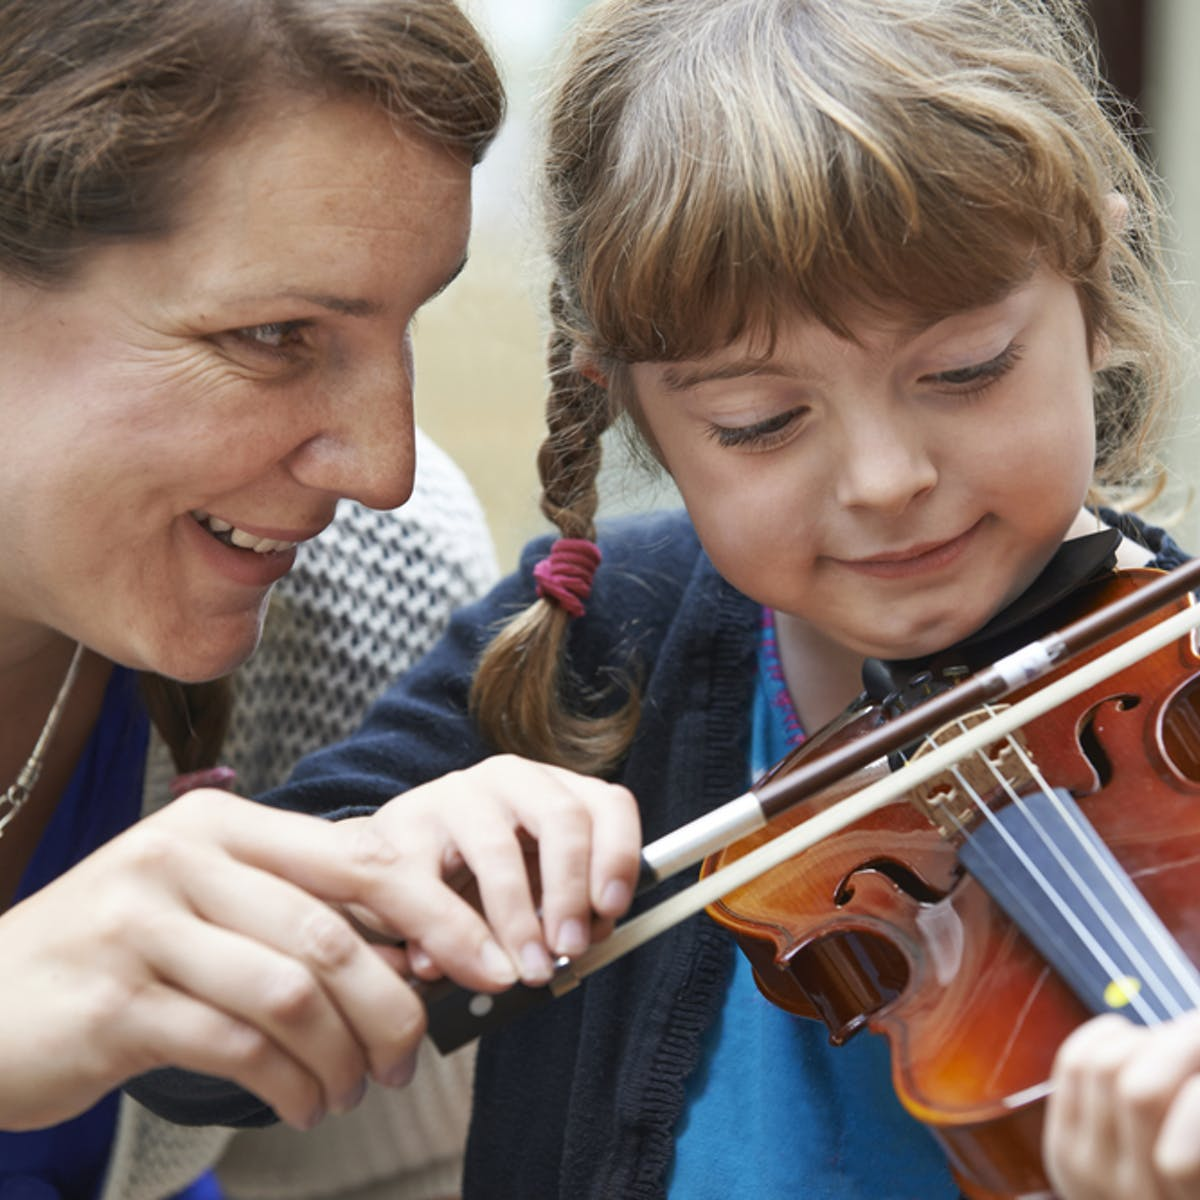 Does the Suzuki method work for kids learning an instrument